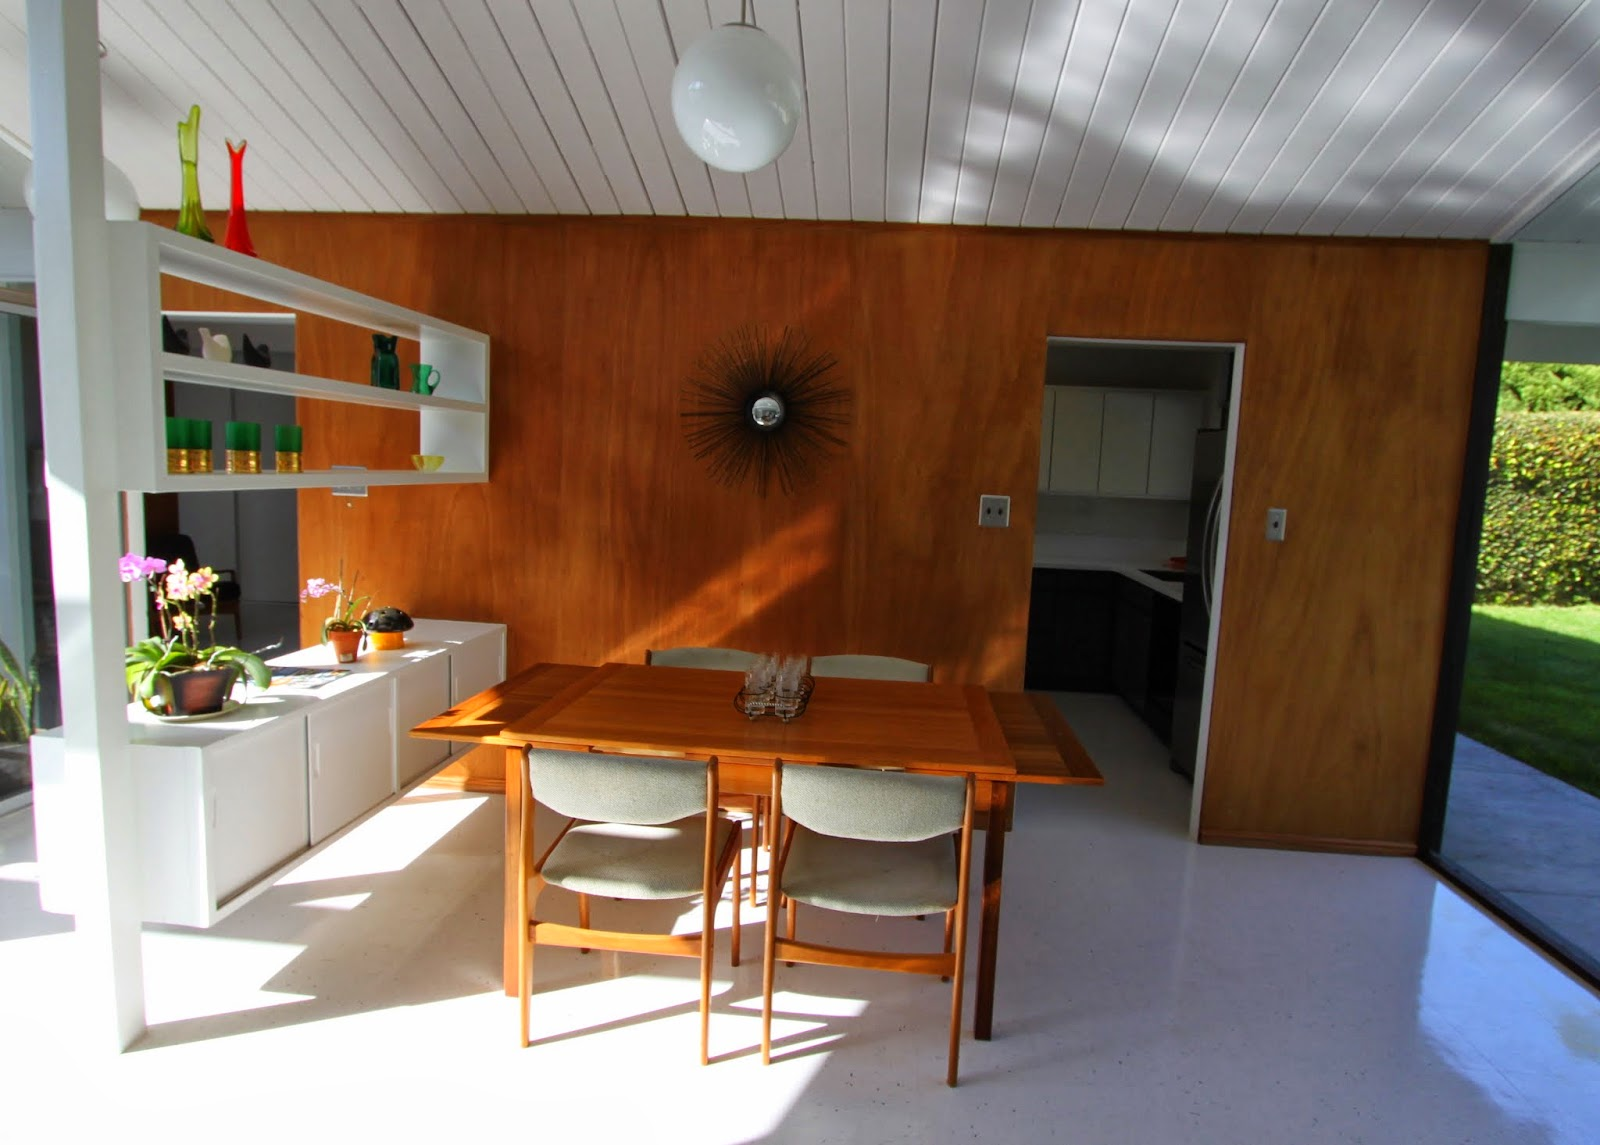 Eichler, Fairmeadow, Orange, 1733 N. Shaffer, Anshen and Allen Architects, 1962 Mid-Century Modern